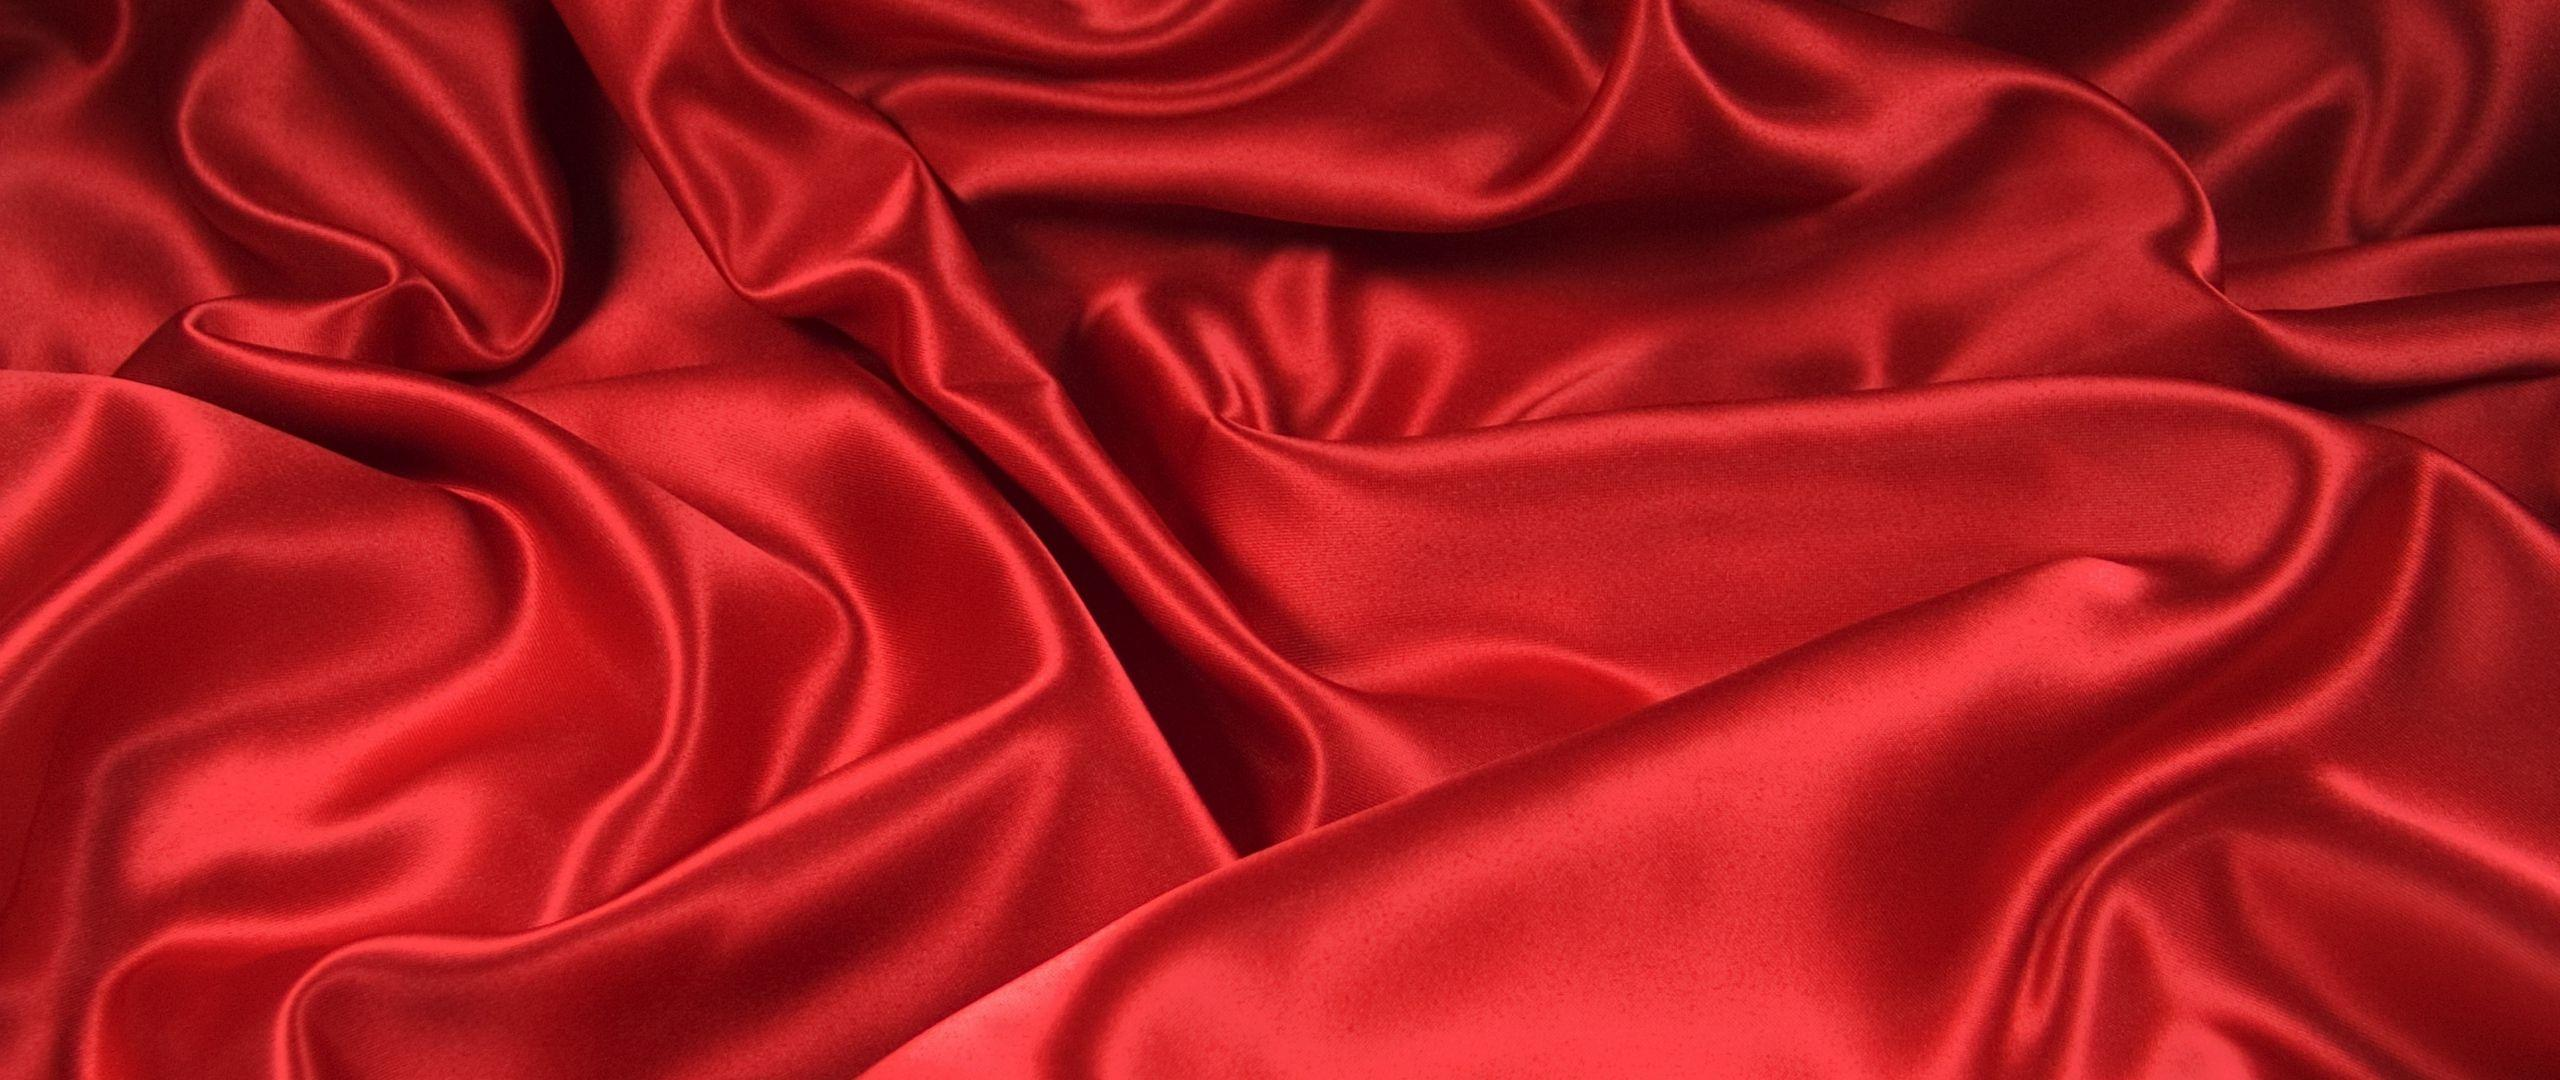 HD Backgrounds Red Fabric Folds Texture Pattern Nylon Wallpapers